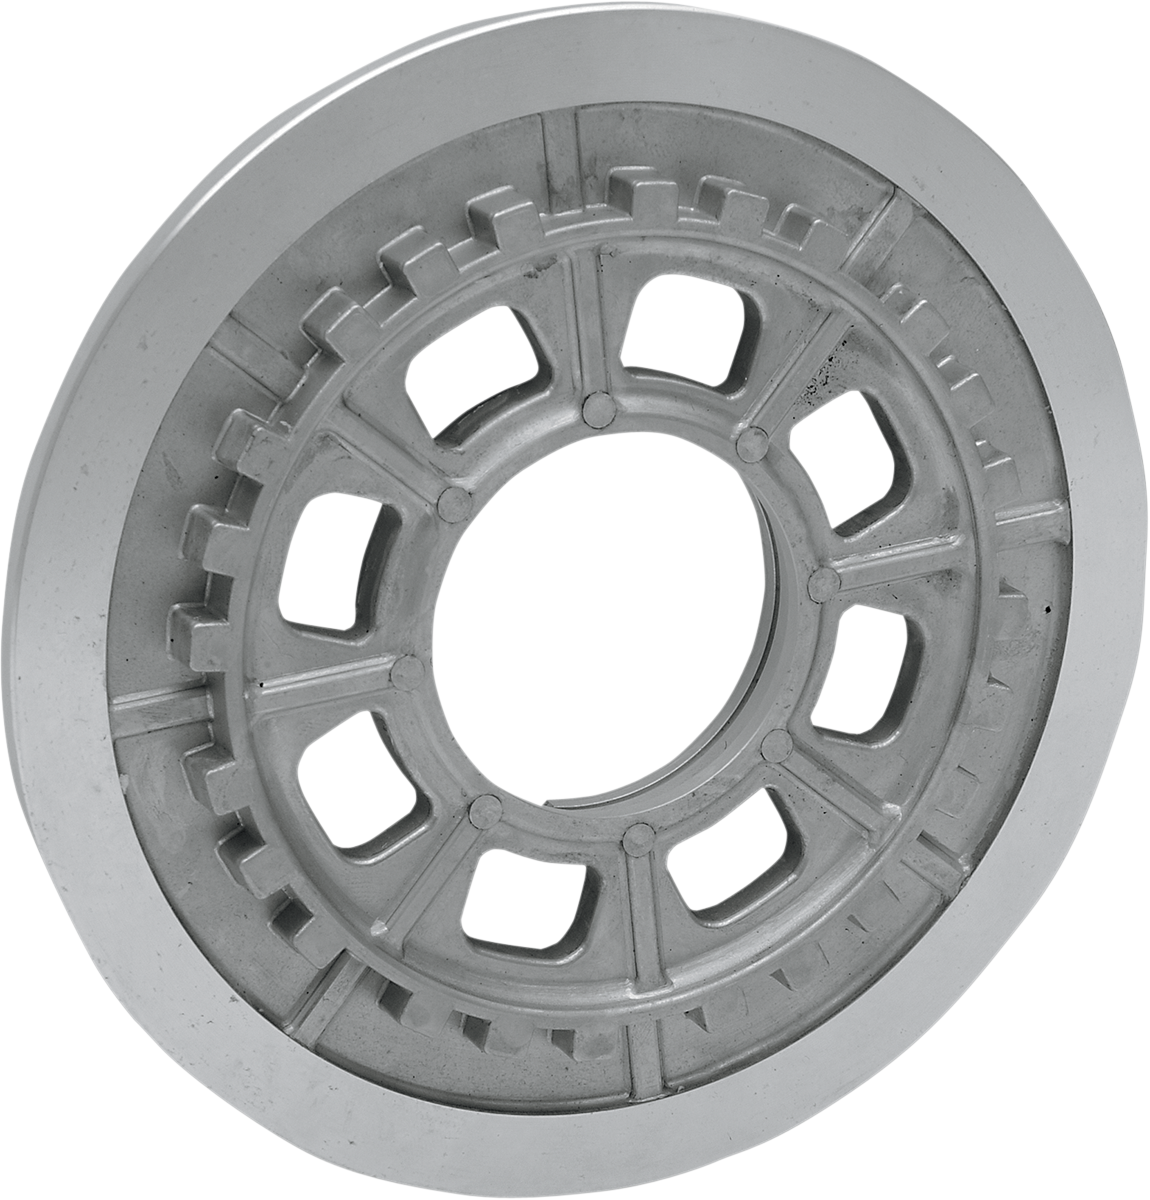 Drag Specialties Clutch Pressure Plate for 91-97 Harley Buell Touring Softail XL